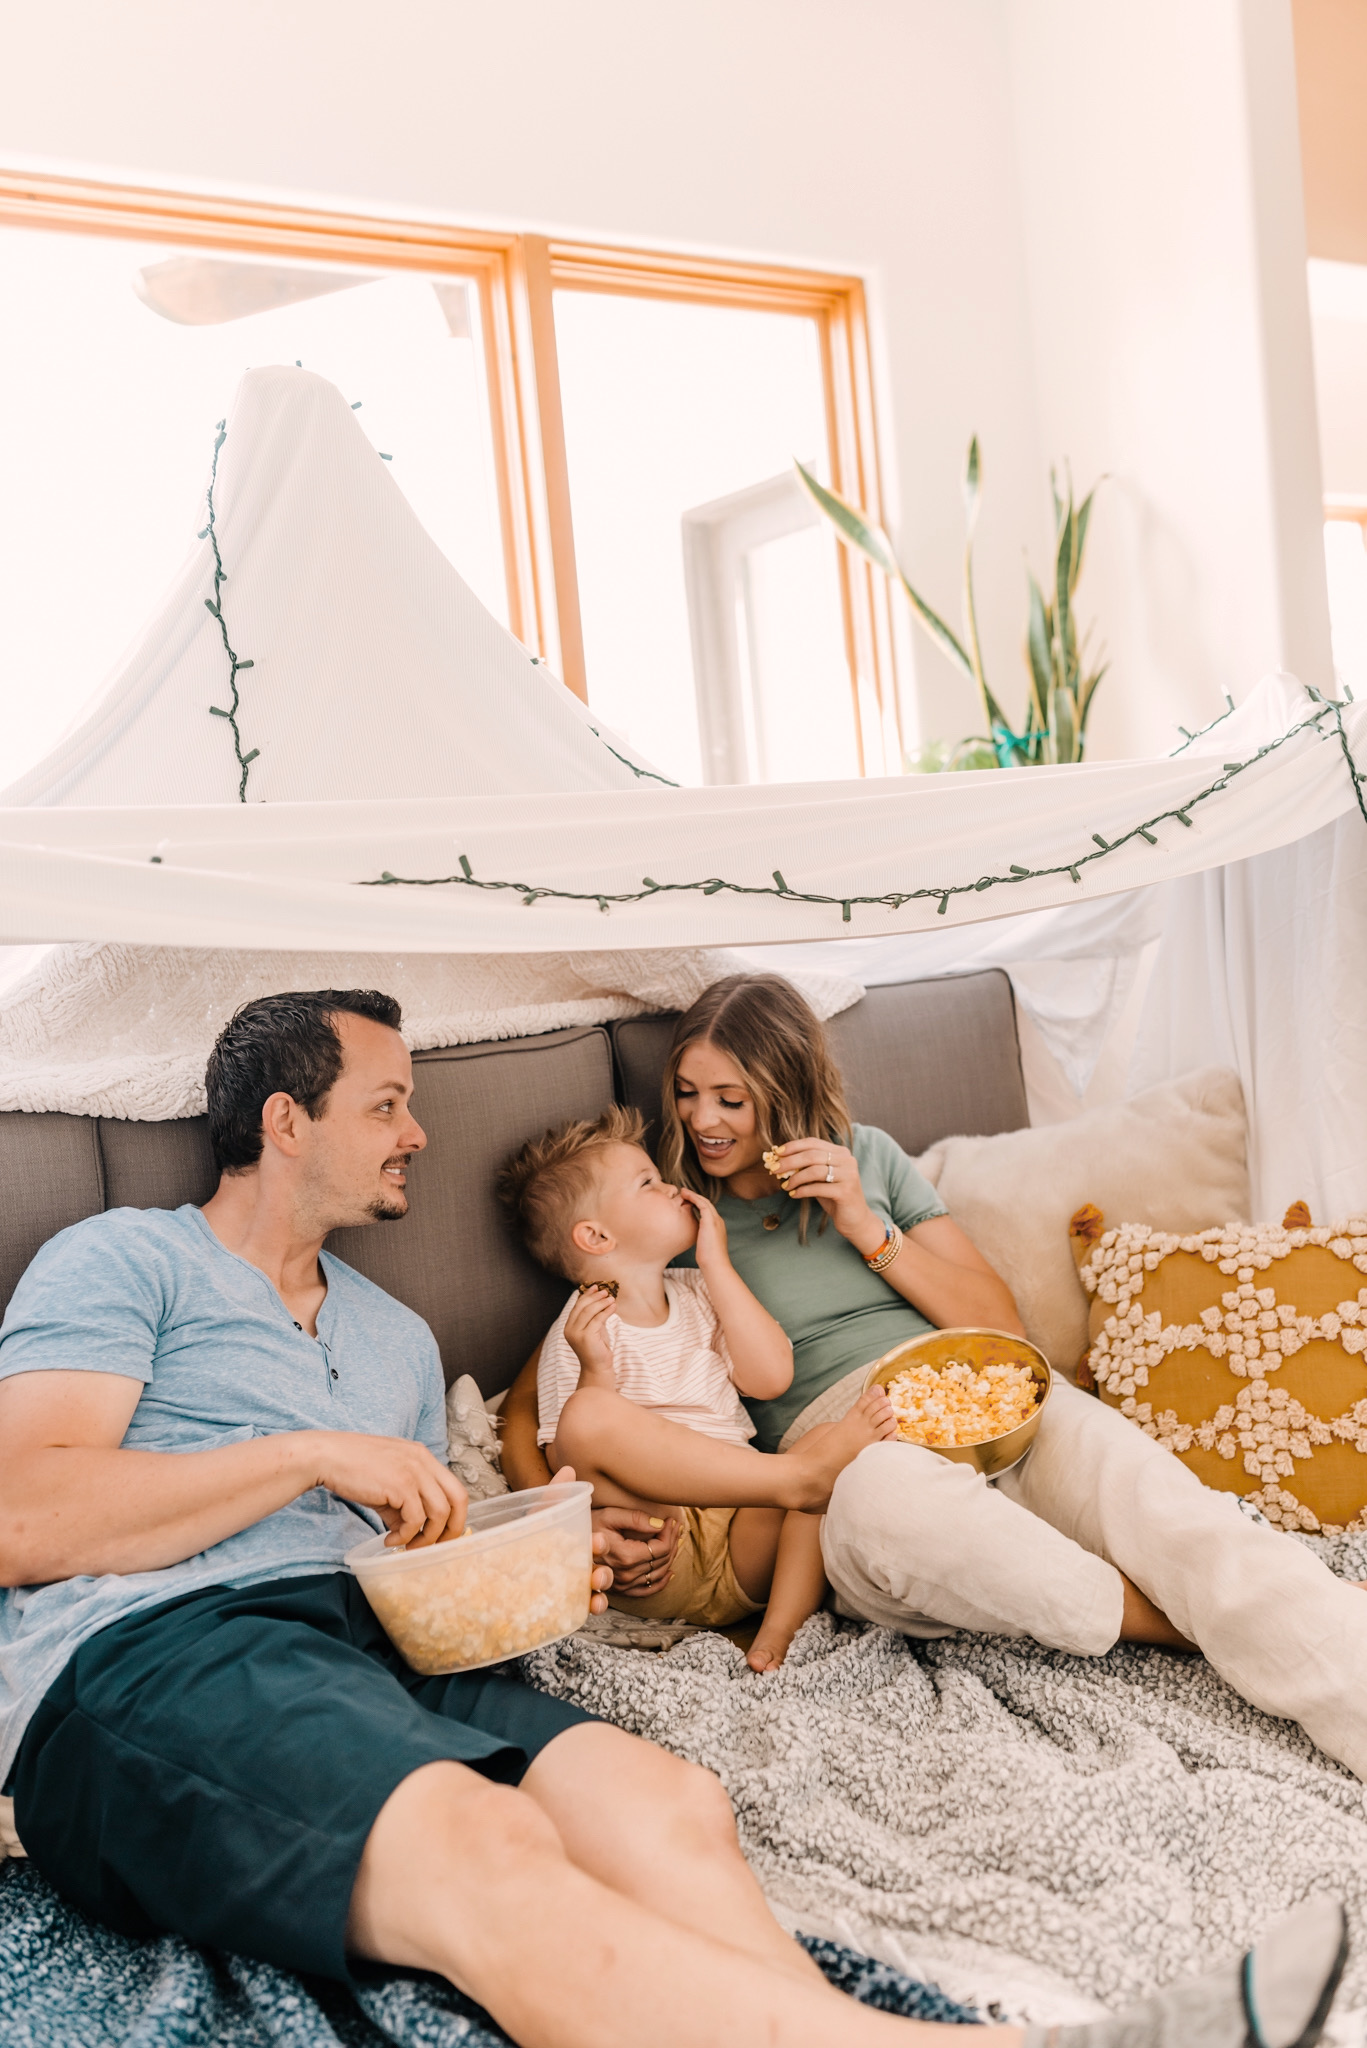 Orville Redenbacher's Popcorn by popular San Diego lifestyle blog, Navy Grace: image of a mom, dad, and young boy sitting in a blanket fort and eating Orville Redenbacher's popcorn.